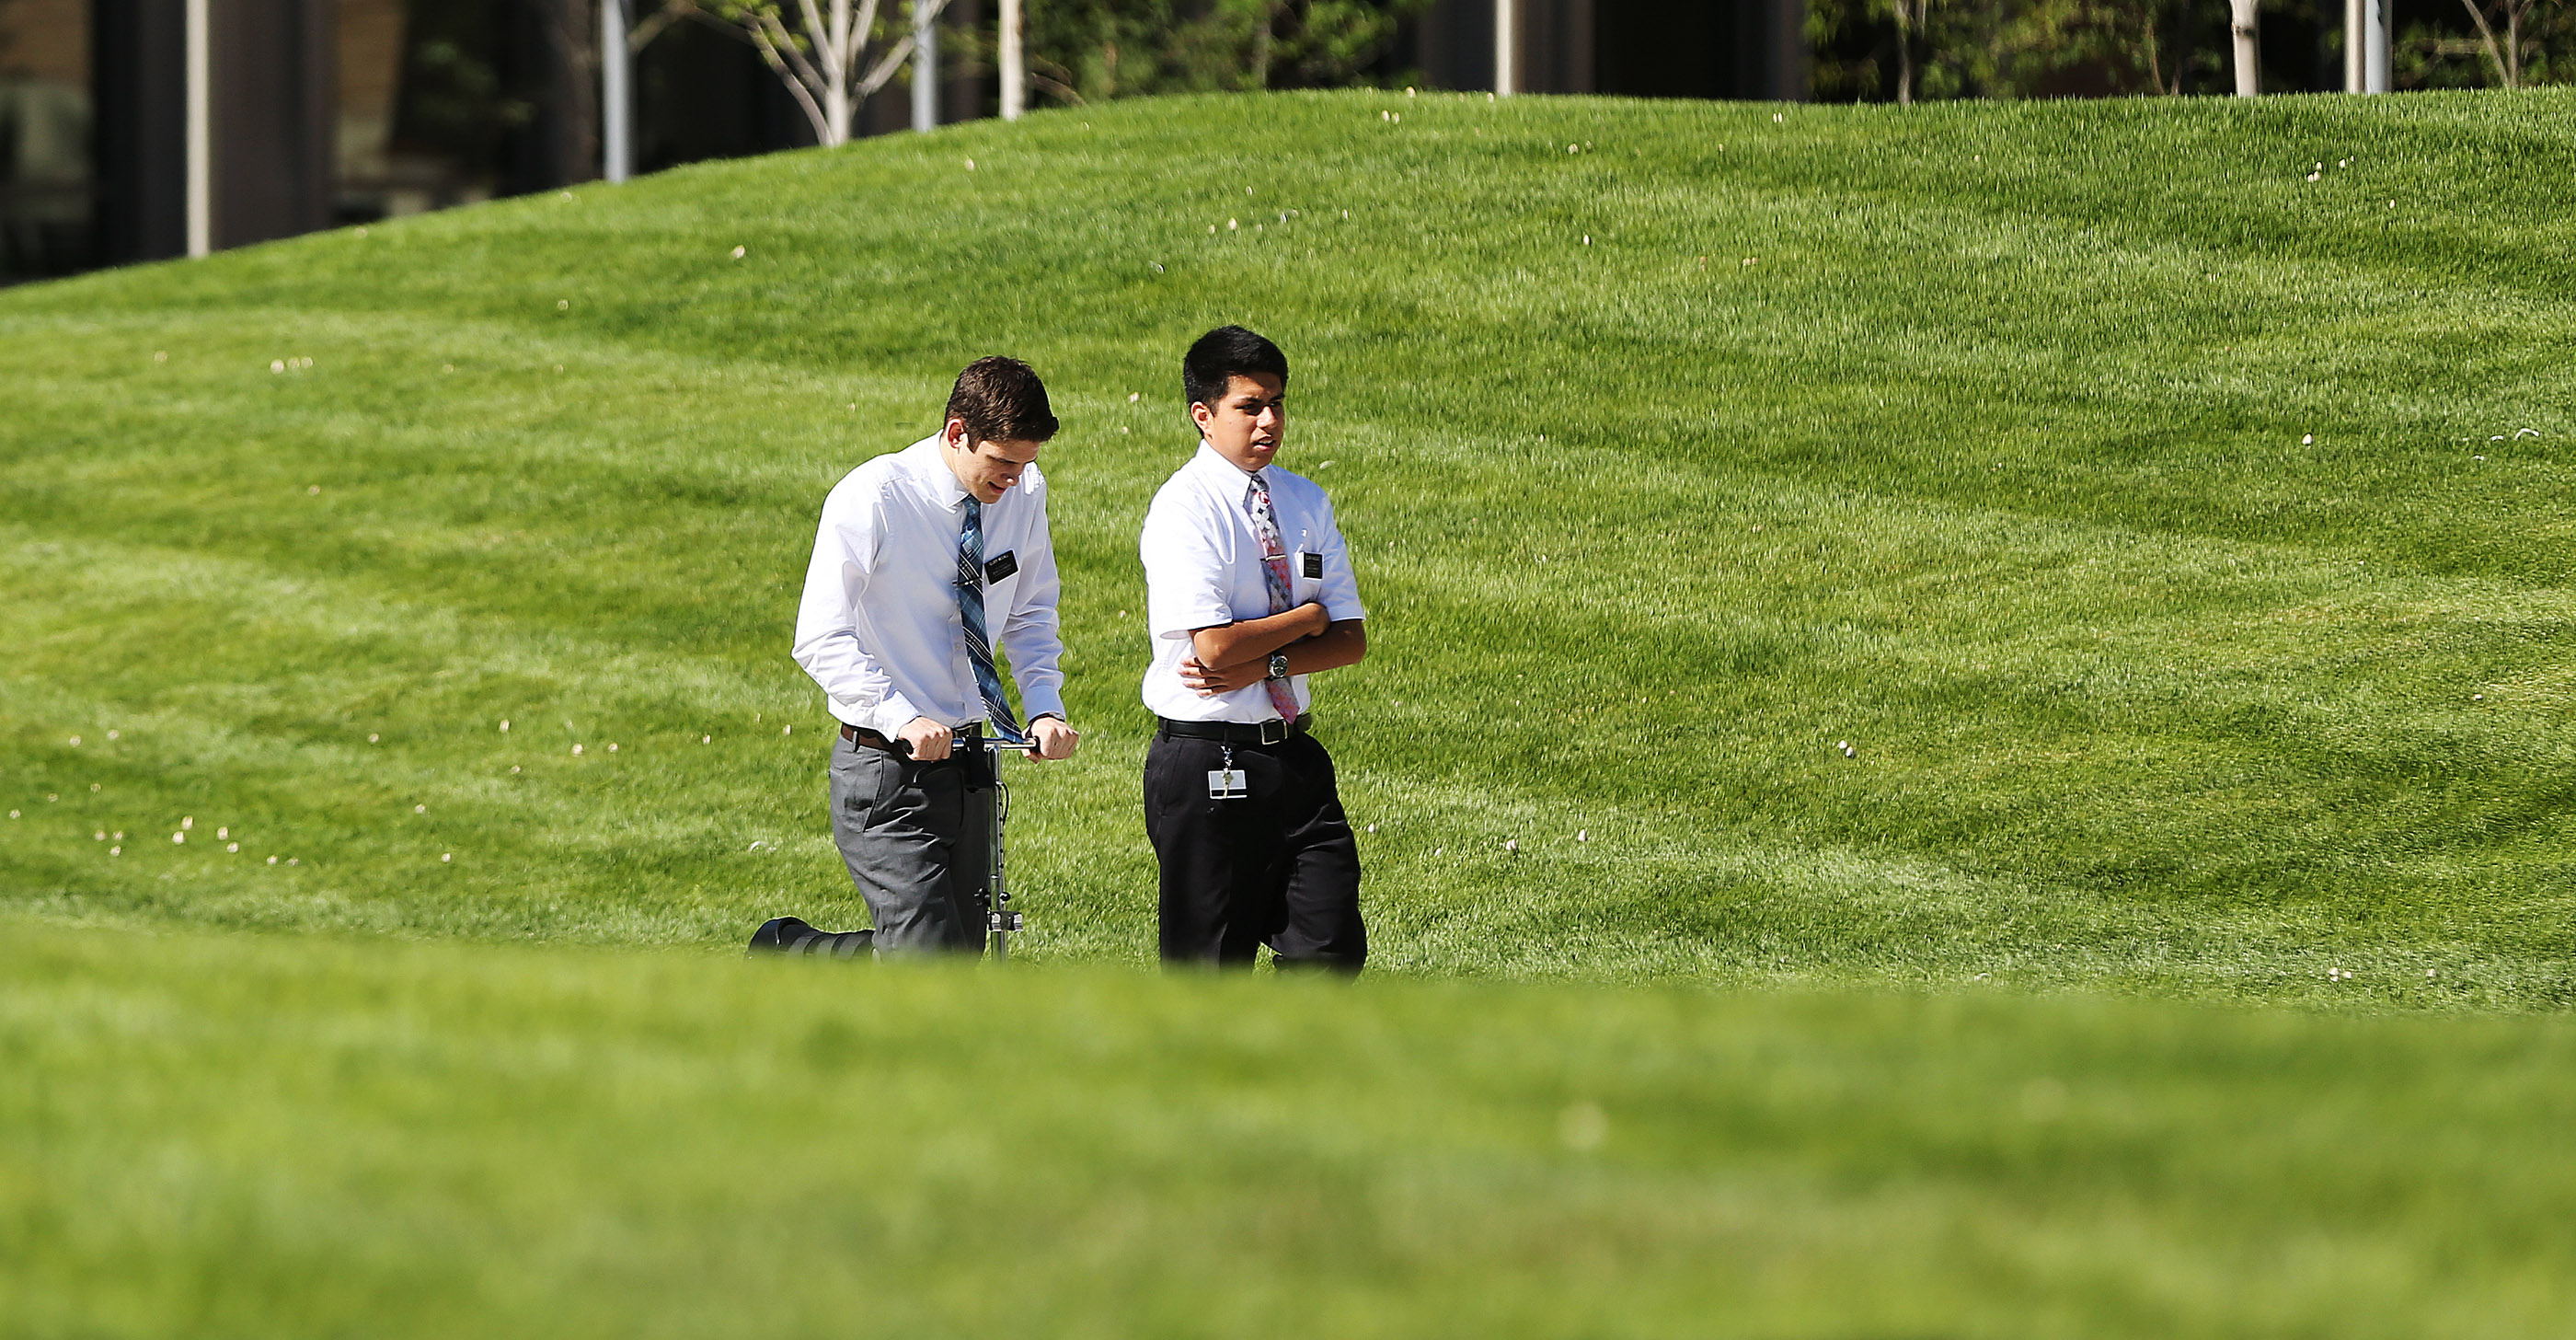 Missionaries walk the grounds of the Provo Missionary Training Center in Provo on Wednesday, July 26, 2017.